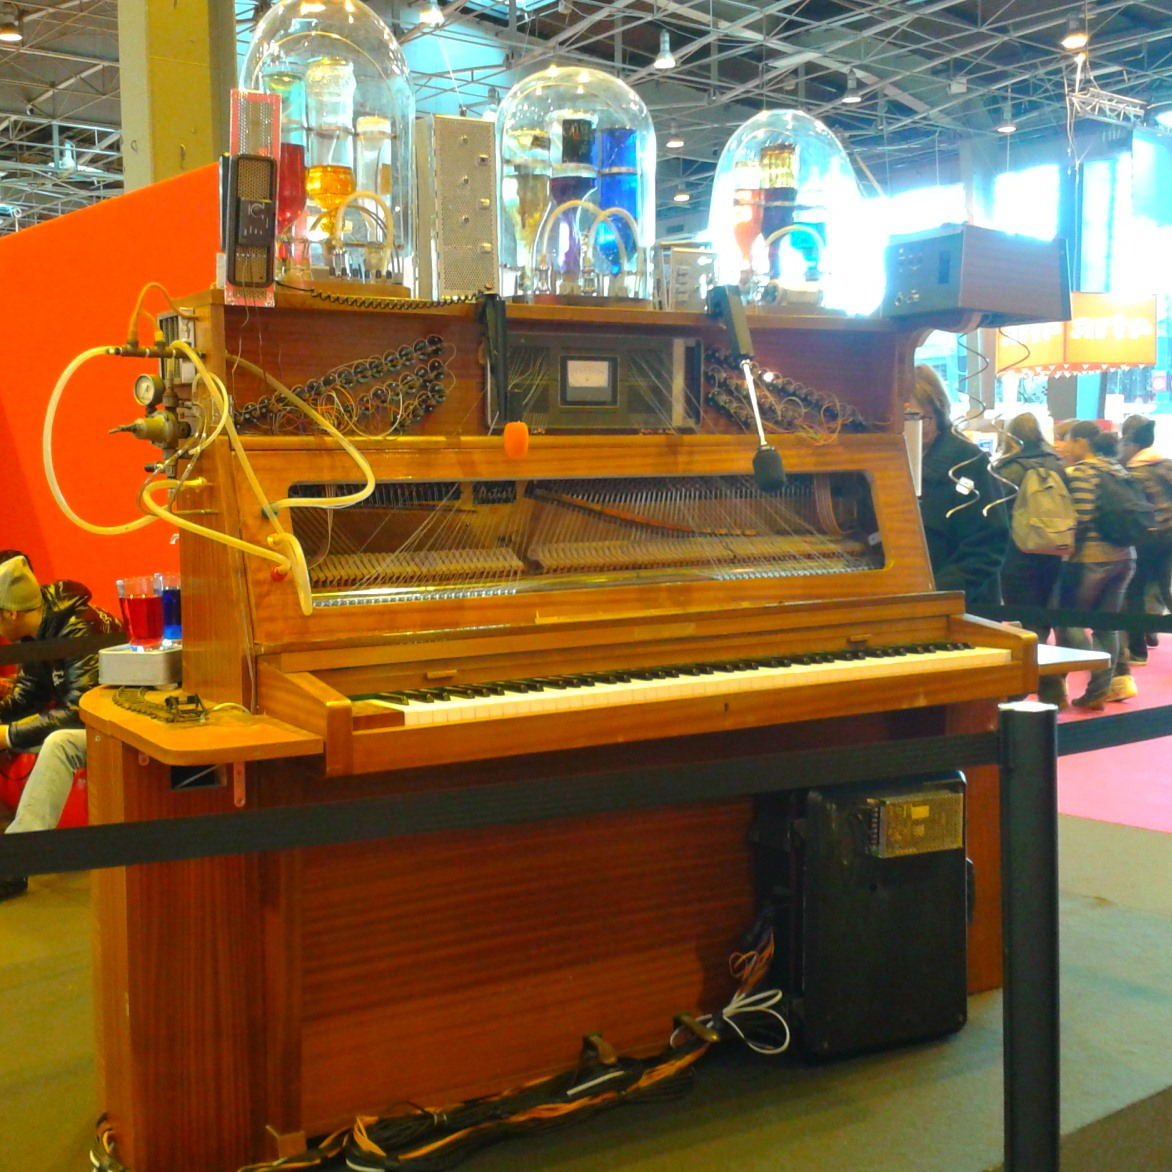 Le pianocktail de Boris VIan, Salon du Livre Paris 2013